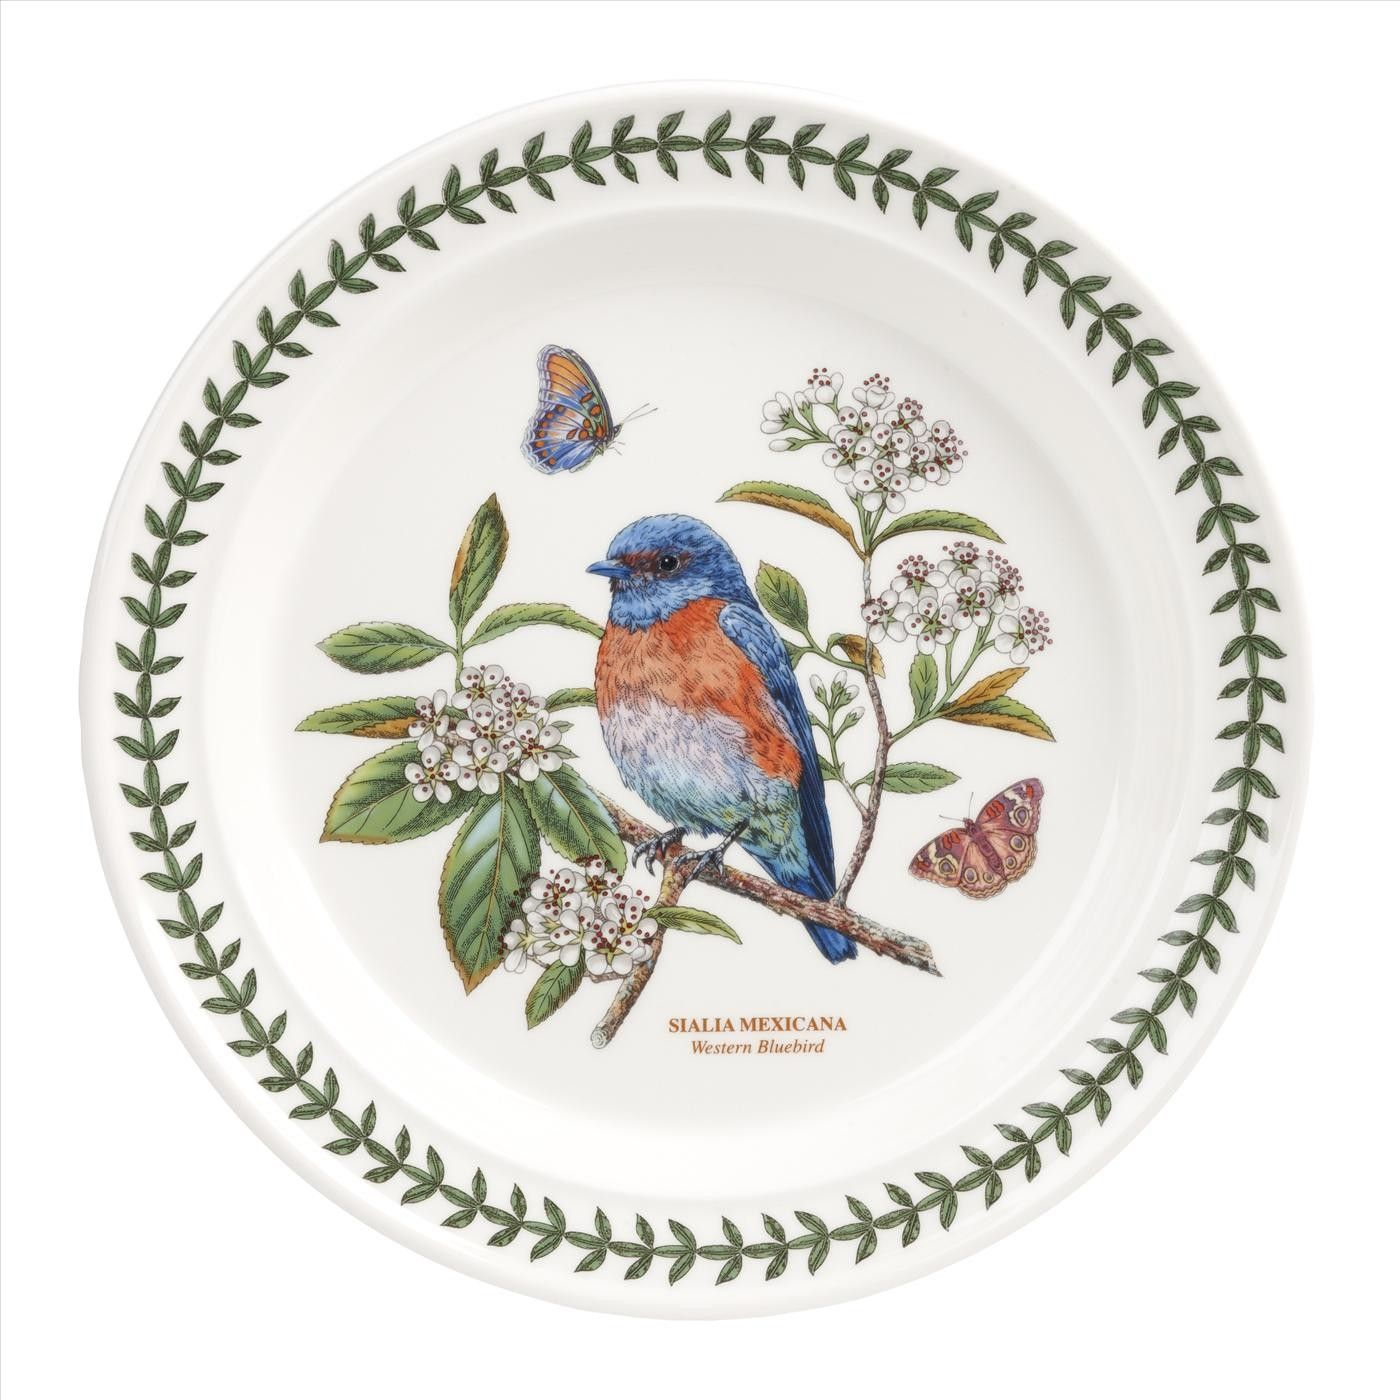 Portmeirion Botanic Garden Birds Set of 6 Western Bluebird Dinner Plates  sc 1 st  Pinterest & Portmeirion Botanic Garden Birds Set of 6 Western Bluebird Dinner ...